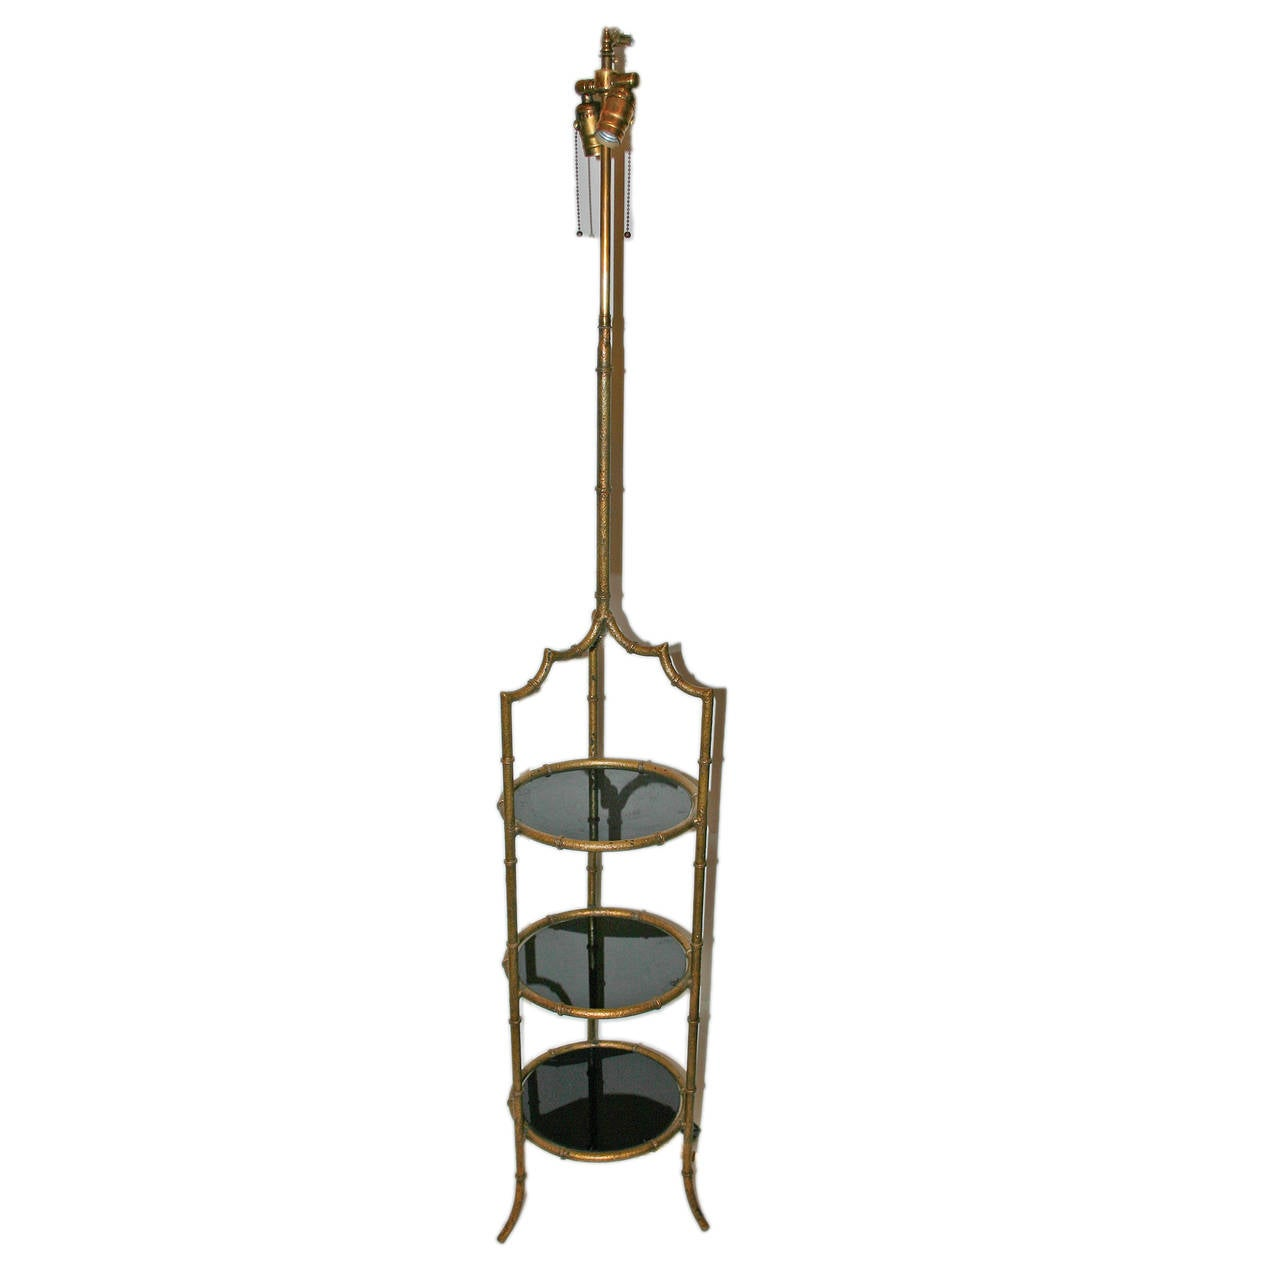 Gilt metal floor lamp with glass shelves for sale at 1stdibs for Floor lamp with shelves